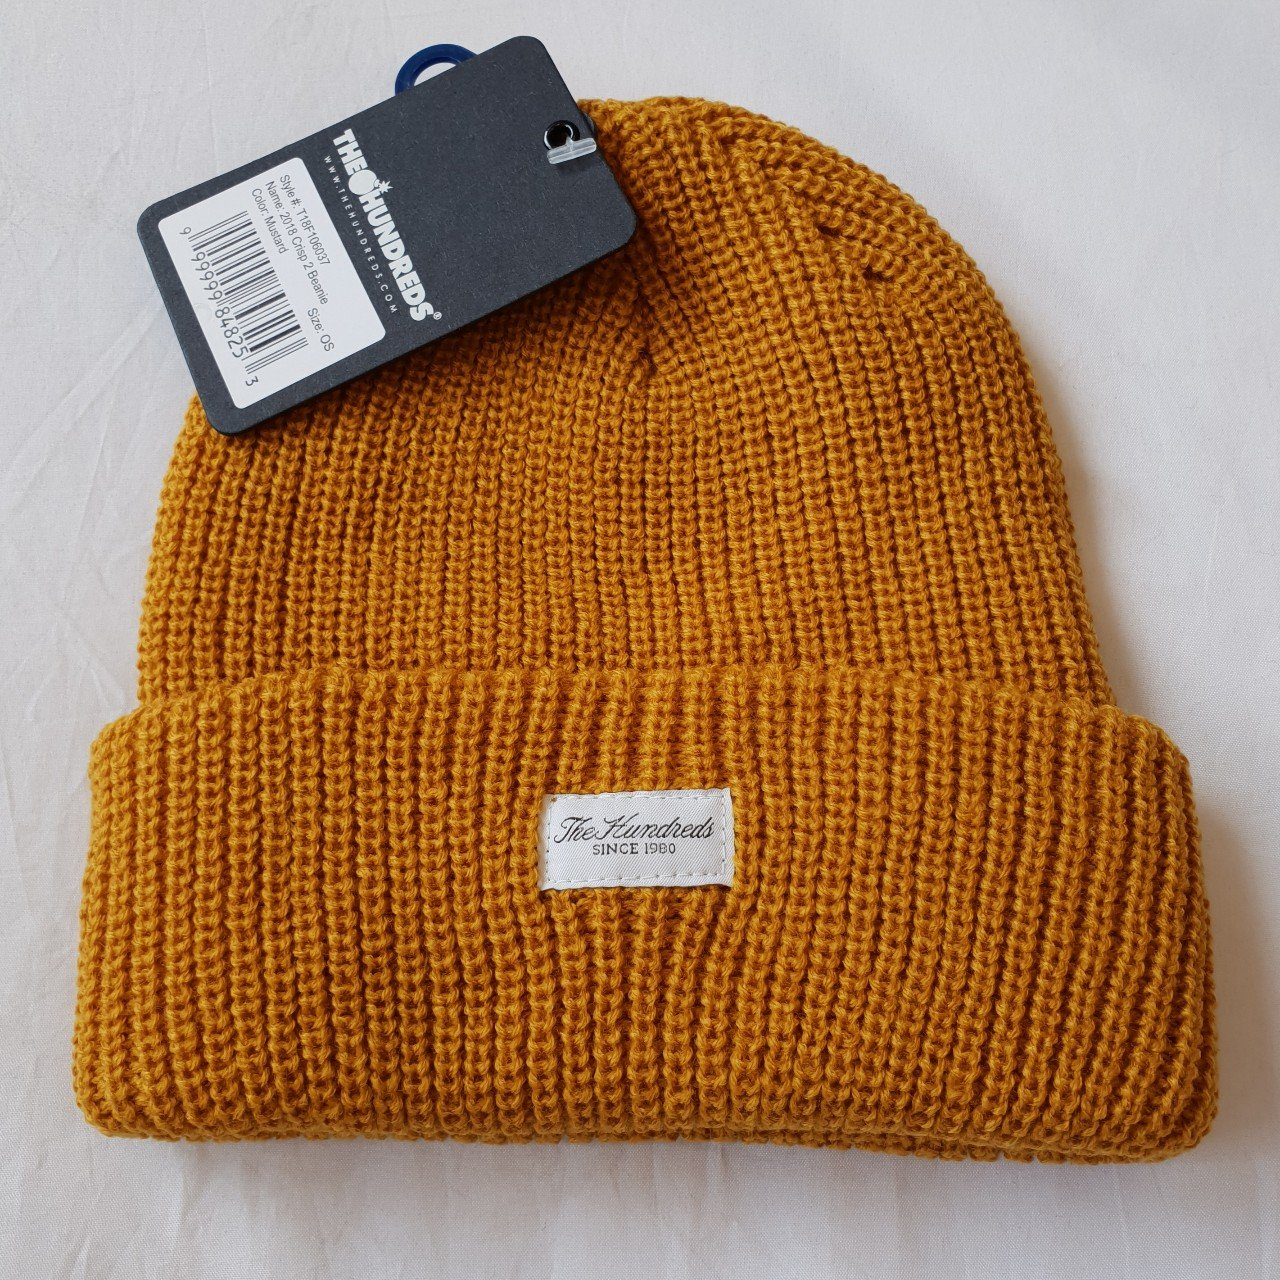 38e4387779b The Hundreds Crisp Beanie Brand New With Tags In Mustard - - Depop